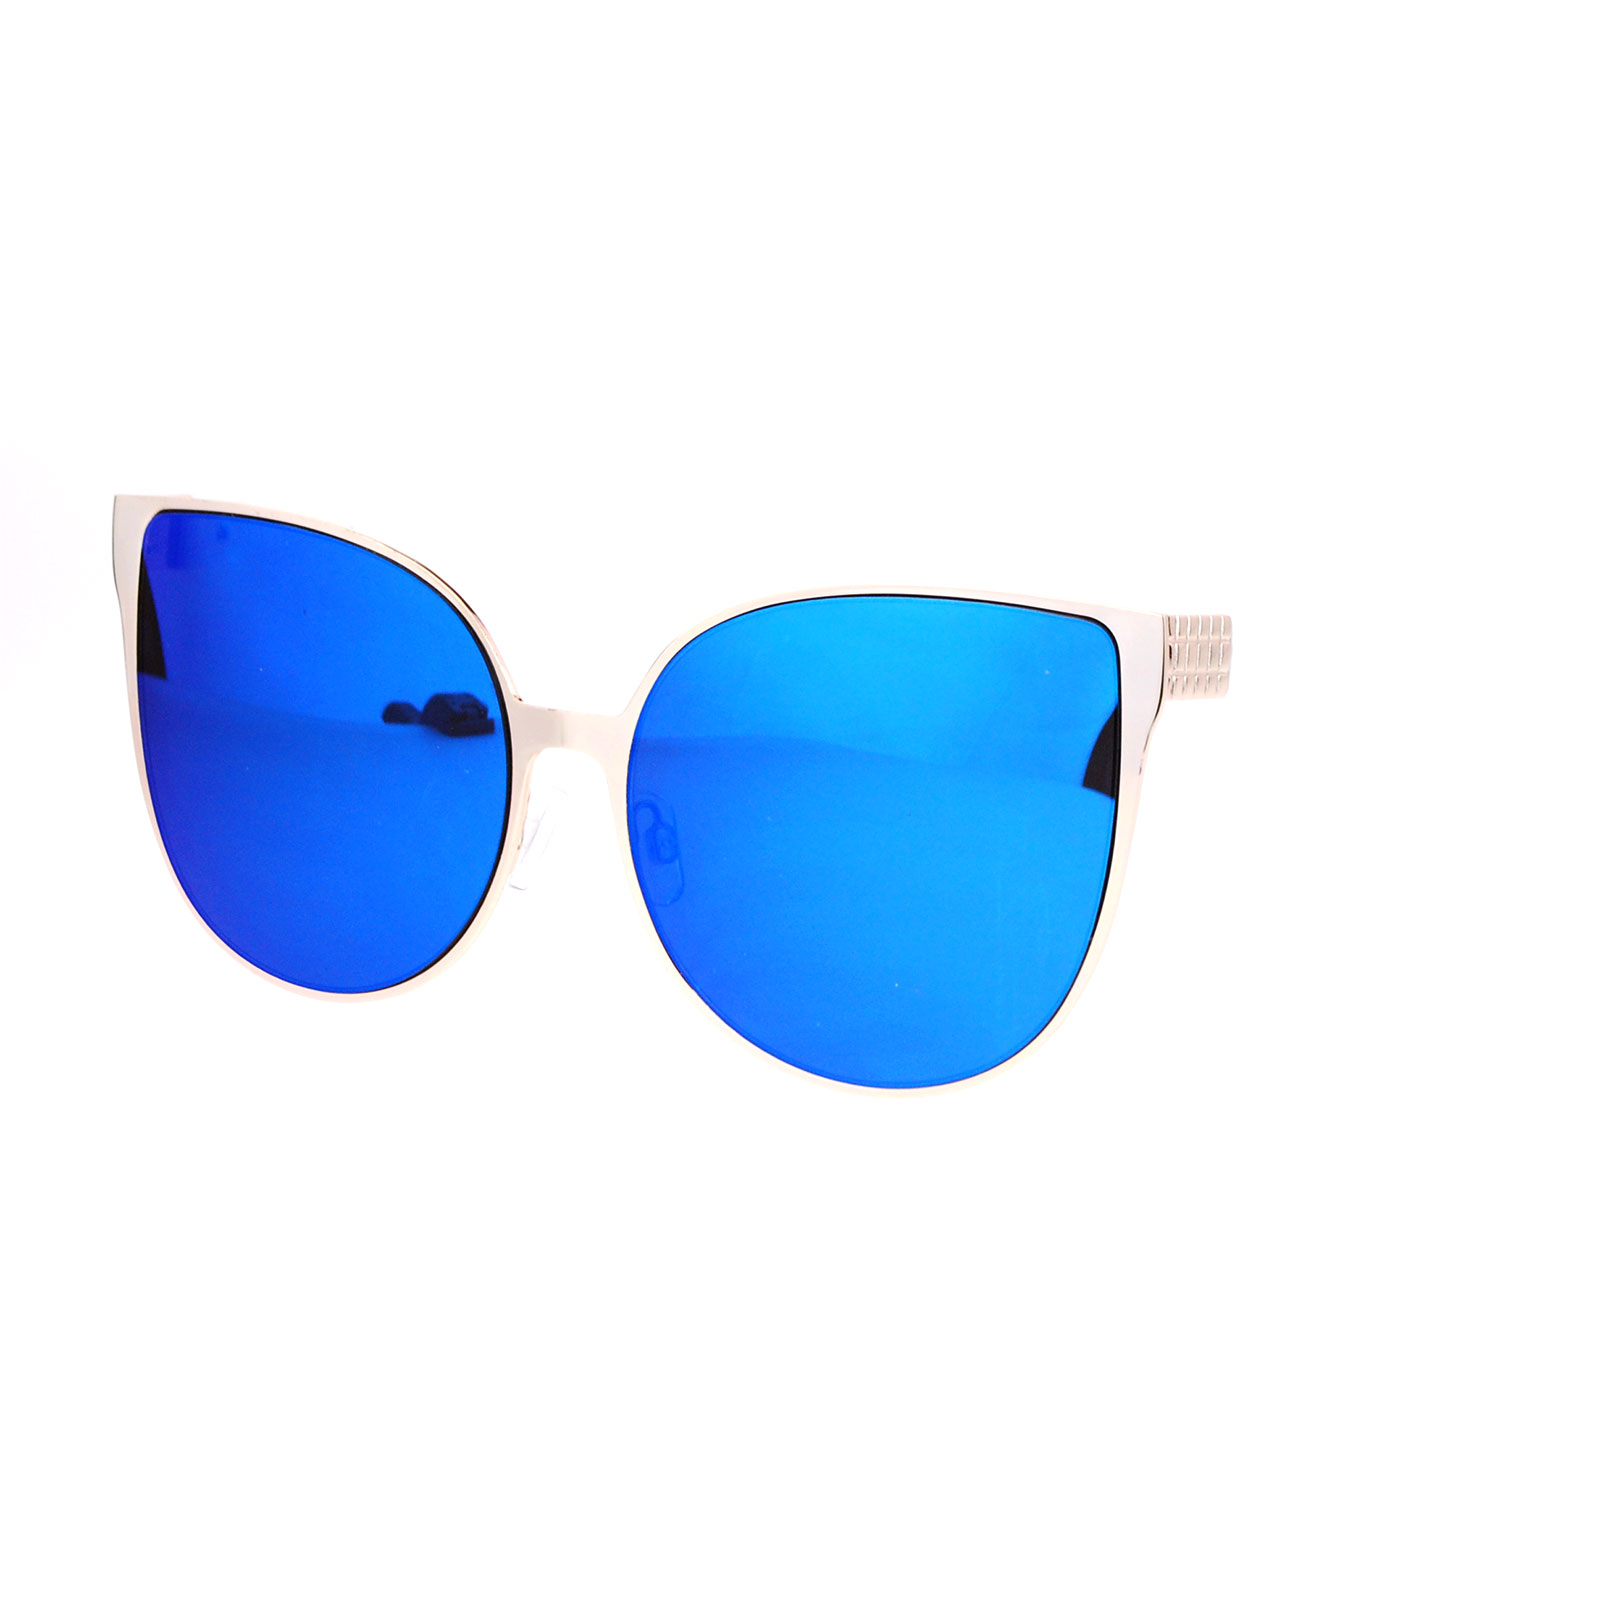 Oversized Mirrored Sunglasses  sa106 womens oversized flat mirrored lens metal rim cat eye